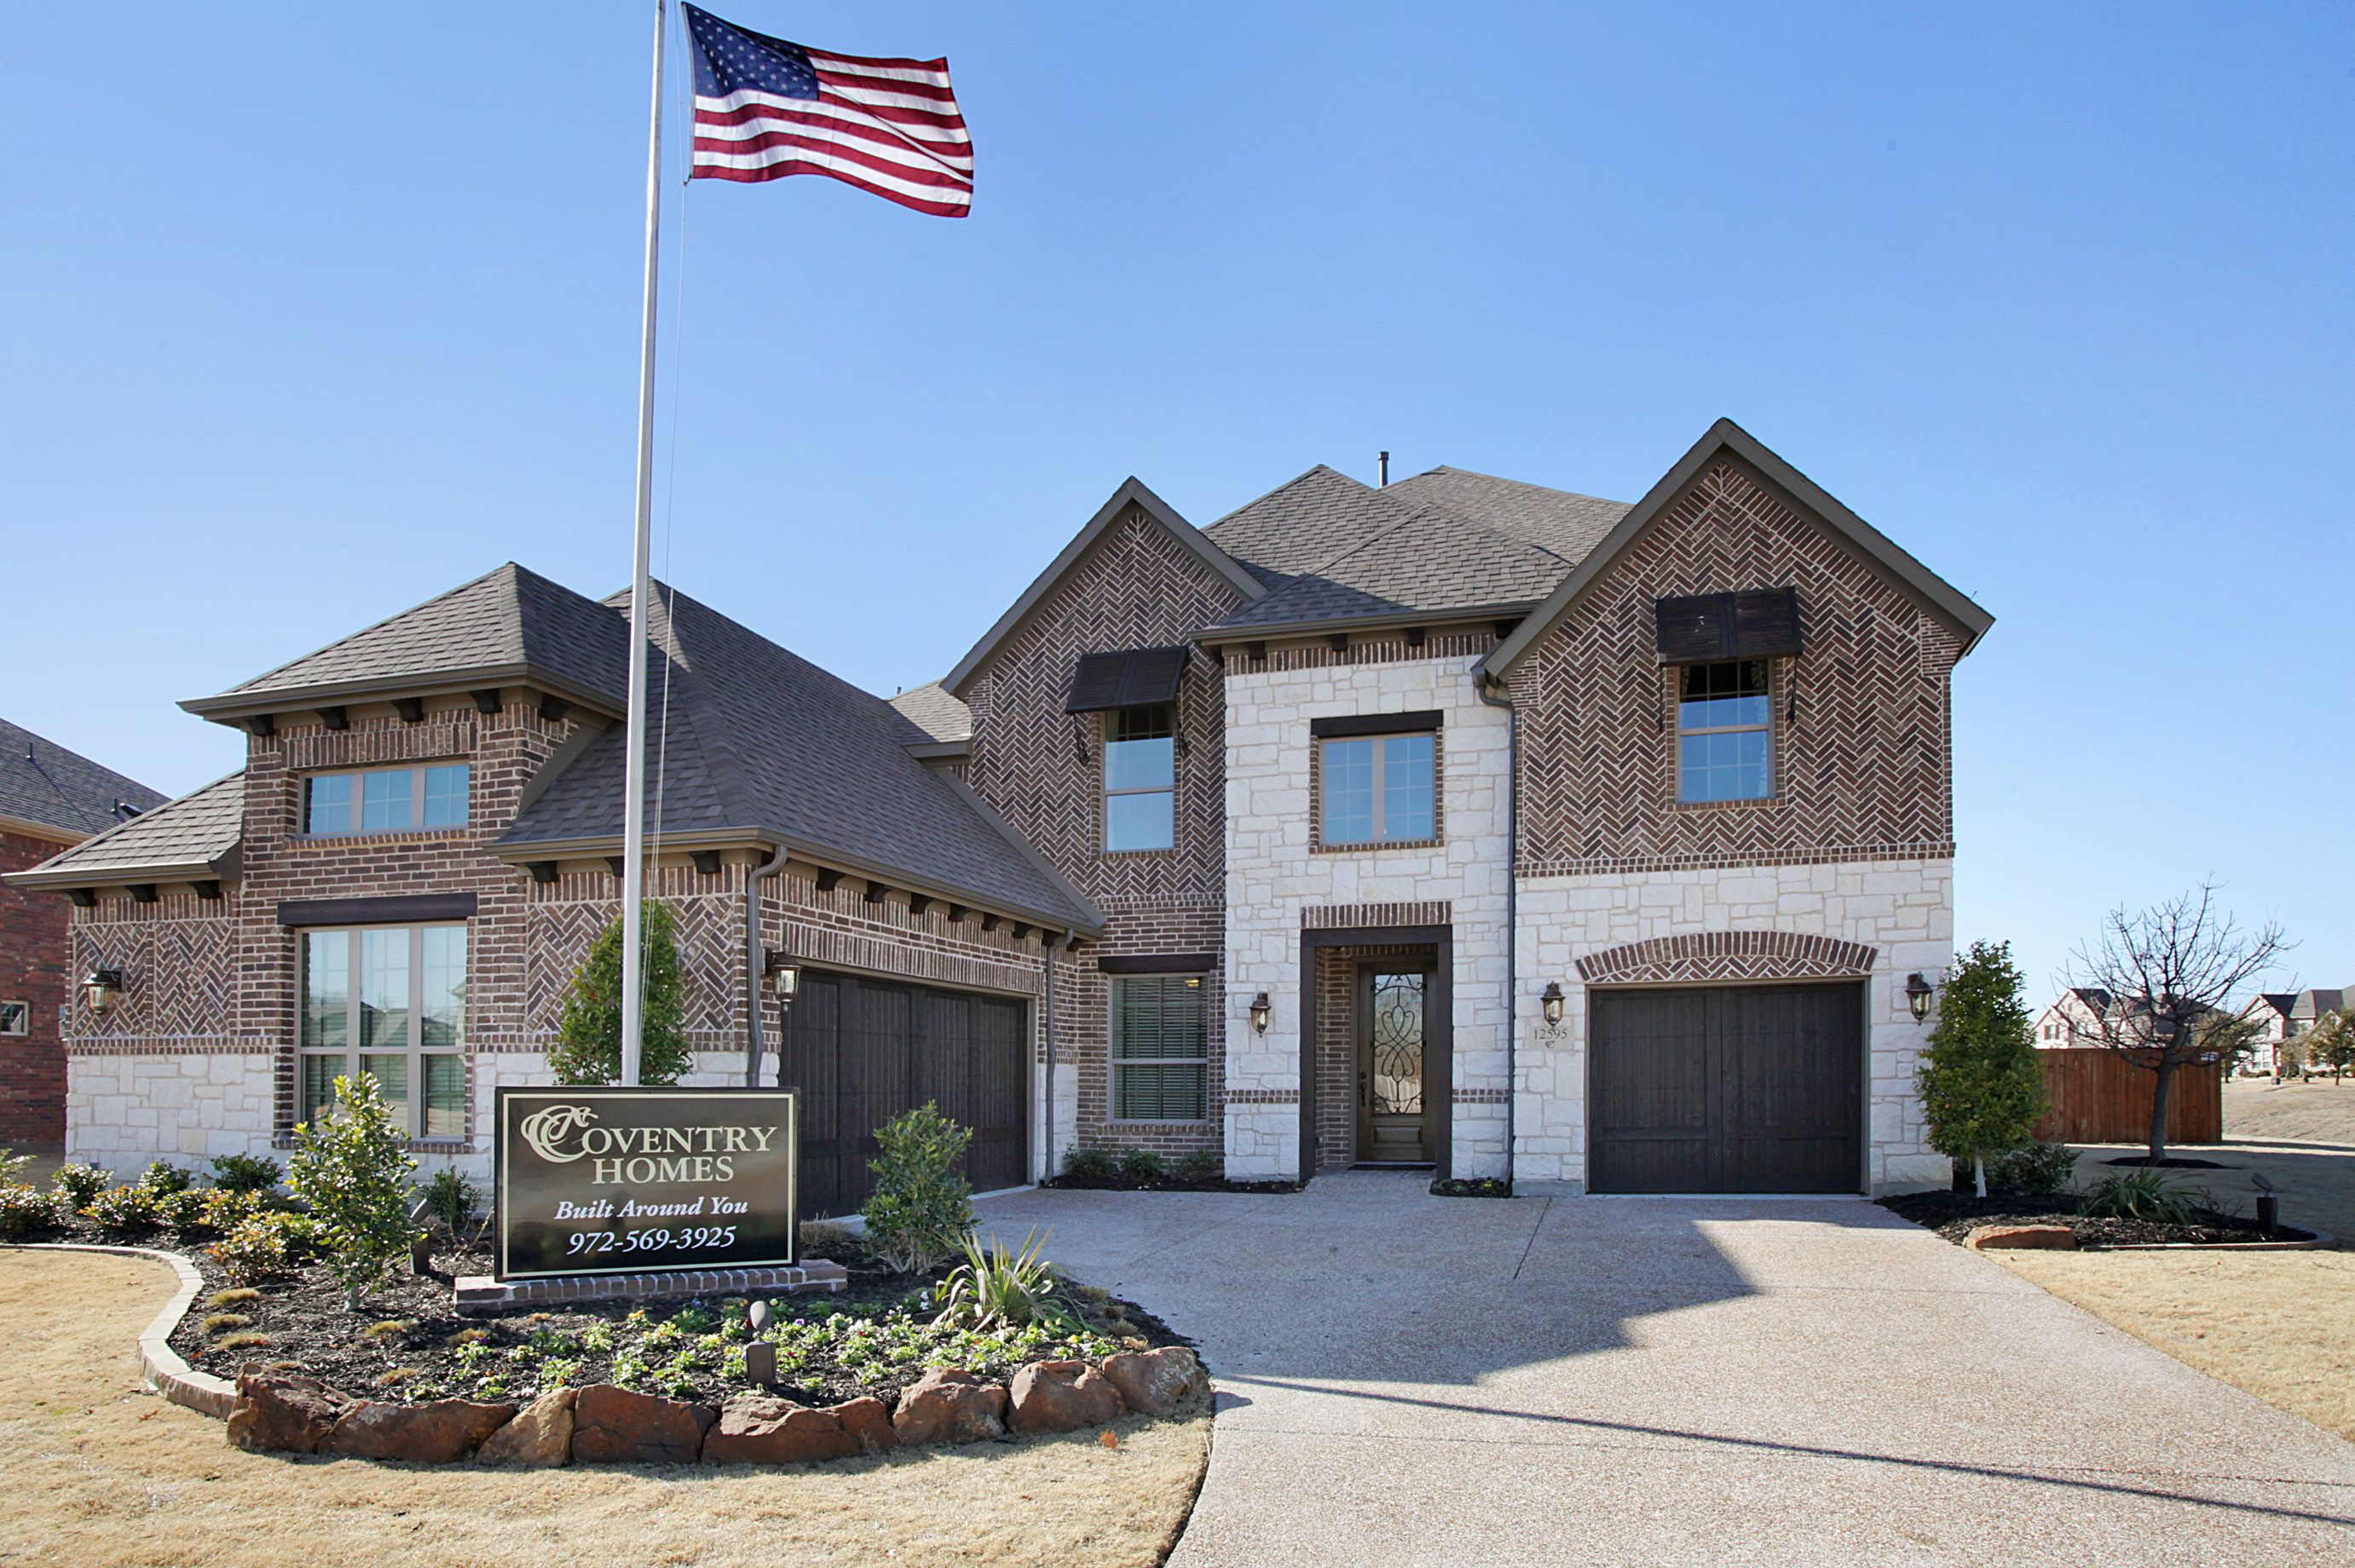 Brick And Stone Elevation On A Beautiful Coventry Home In Dallas Tx Http Www Coventryhomes Com Dallas Ft Worth Availa Coventry Homes House Styles New Homes